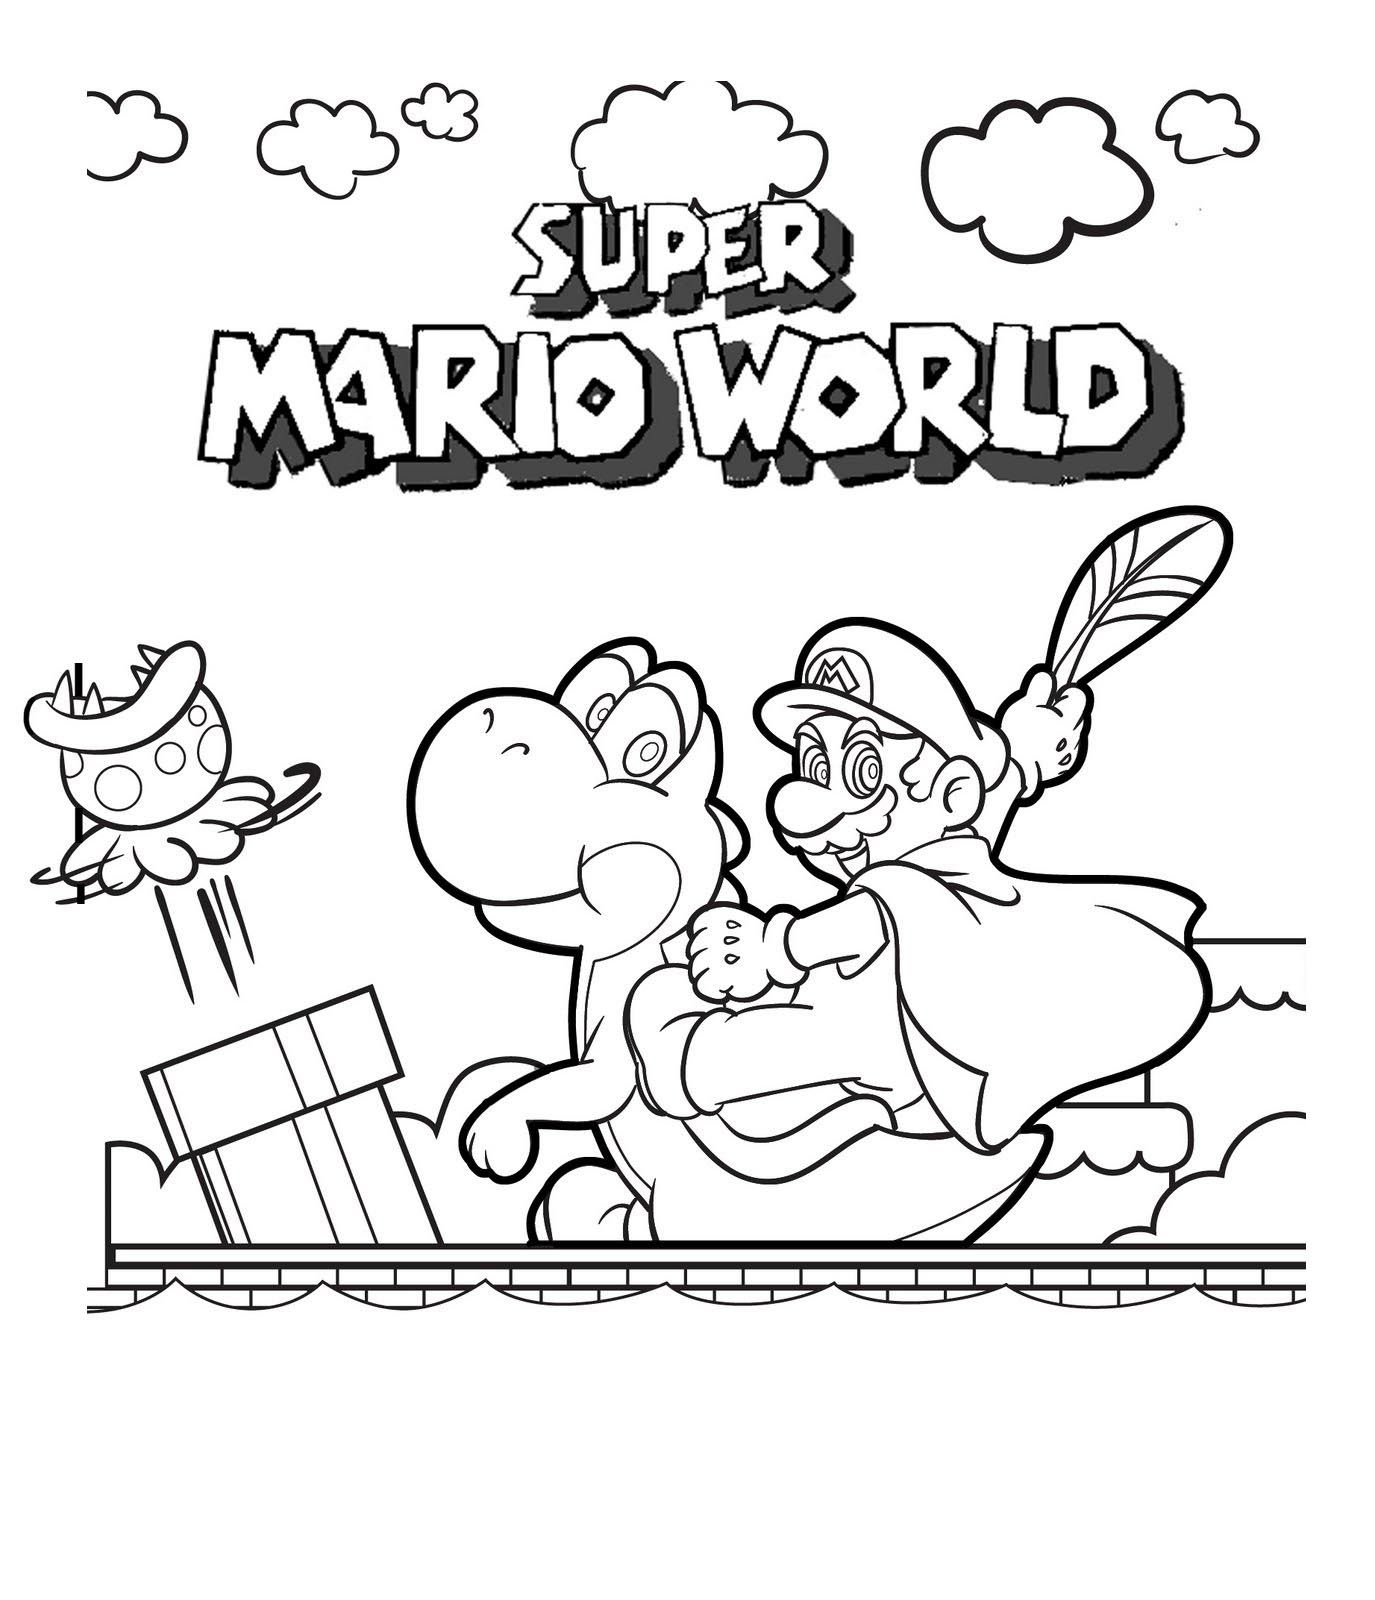 Free Printable Mario Coloring Pages For Kids Super Mario Coloring Pages Mario Coloring Pages Kids Printable Coloring Pages